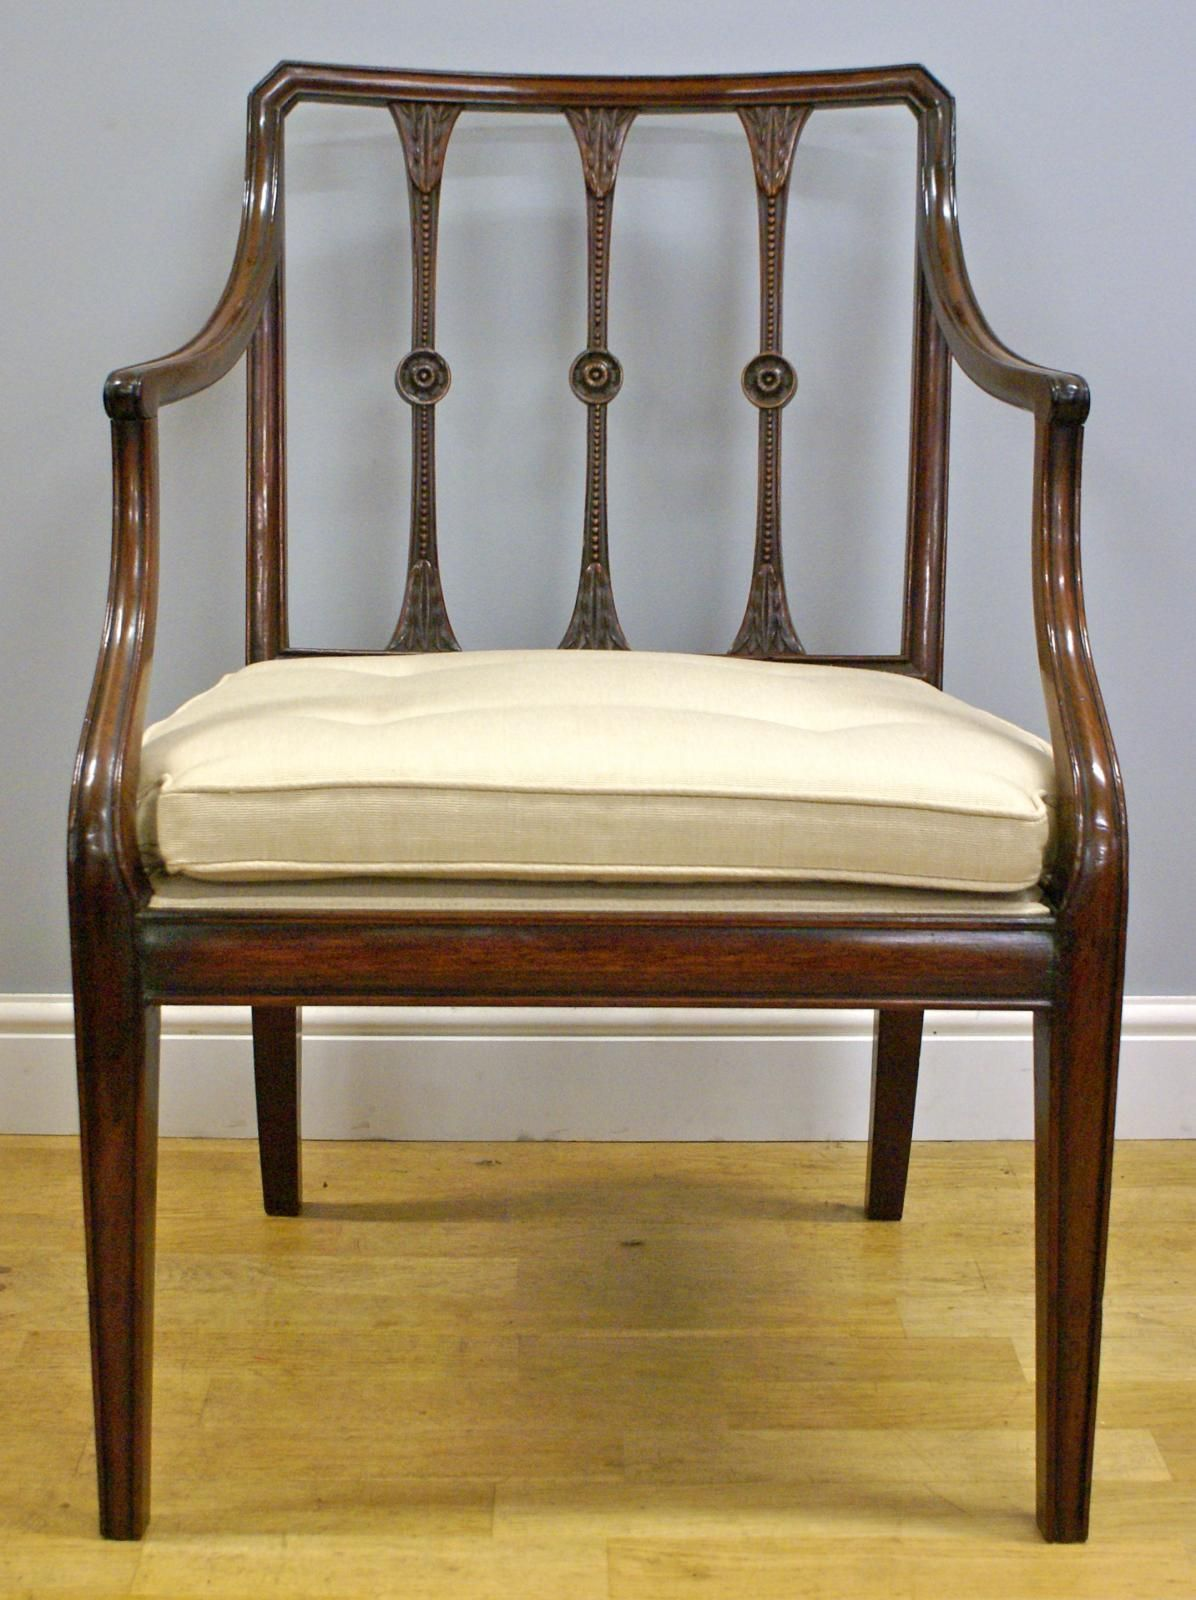 Looking For Chairs A Hepplewhite Period Cuban Mahogany Arm Chair Looking